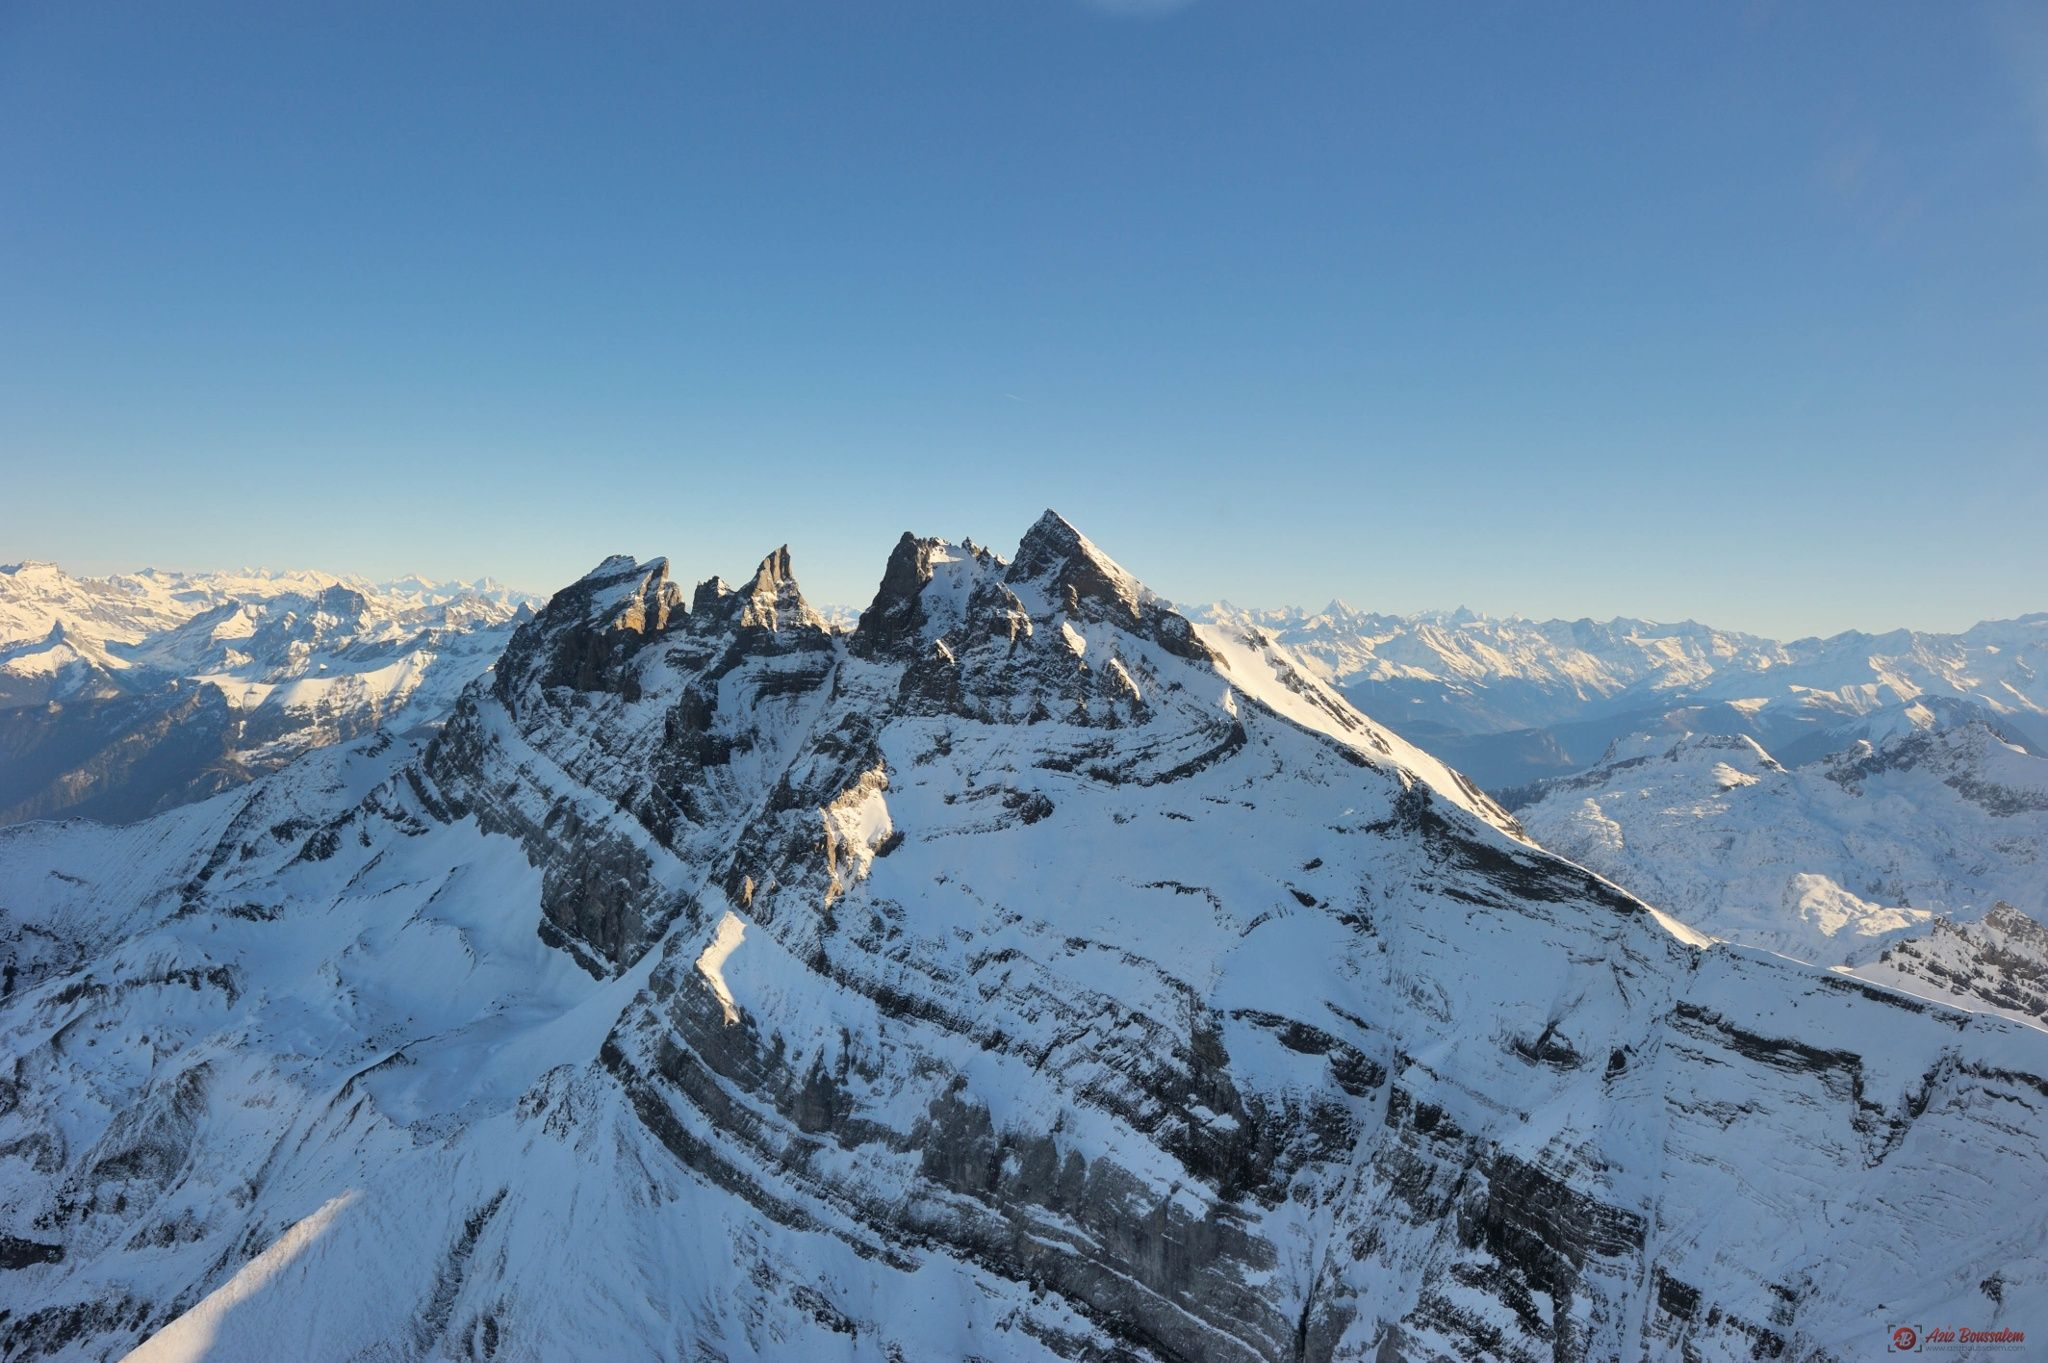 Merry Christmas from the Alps